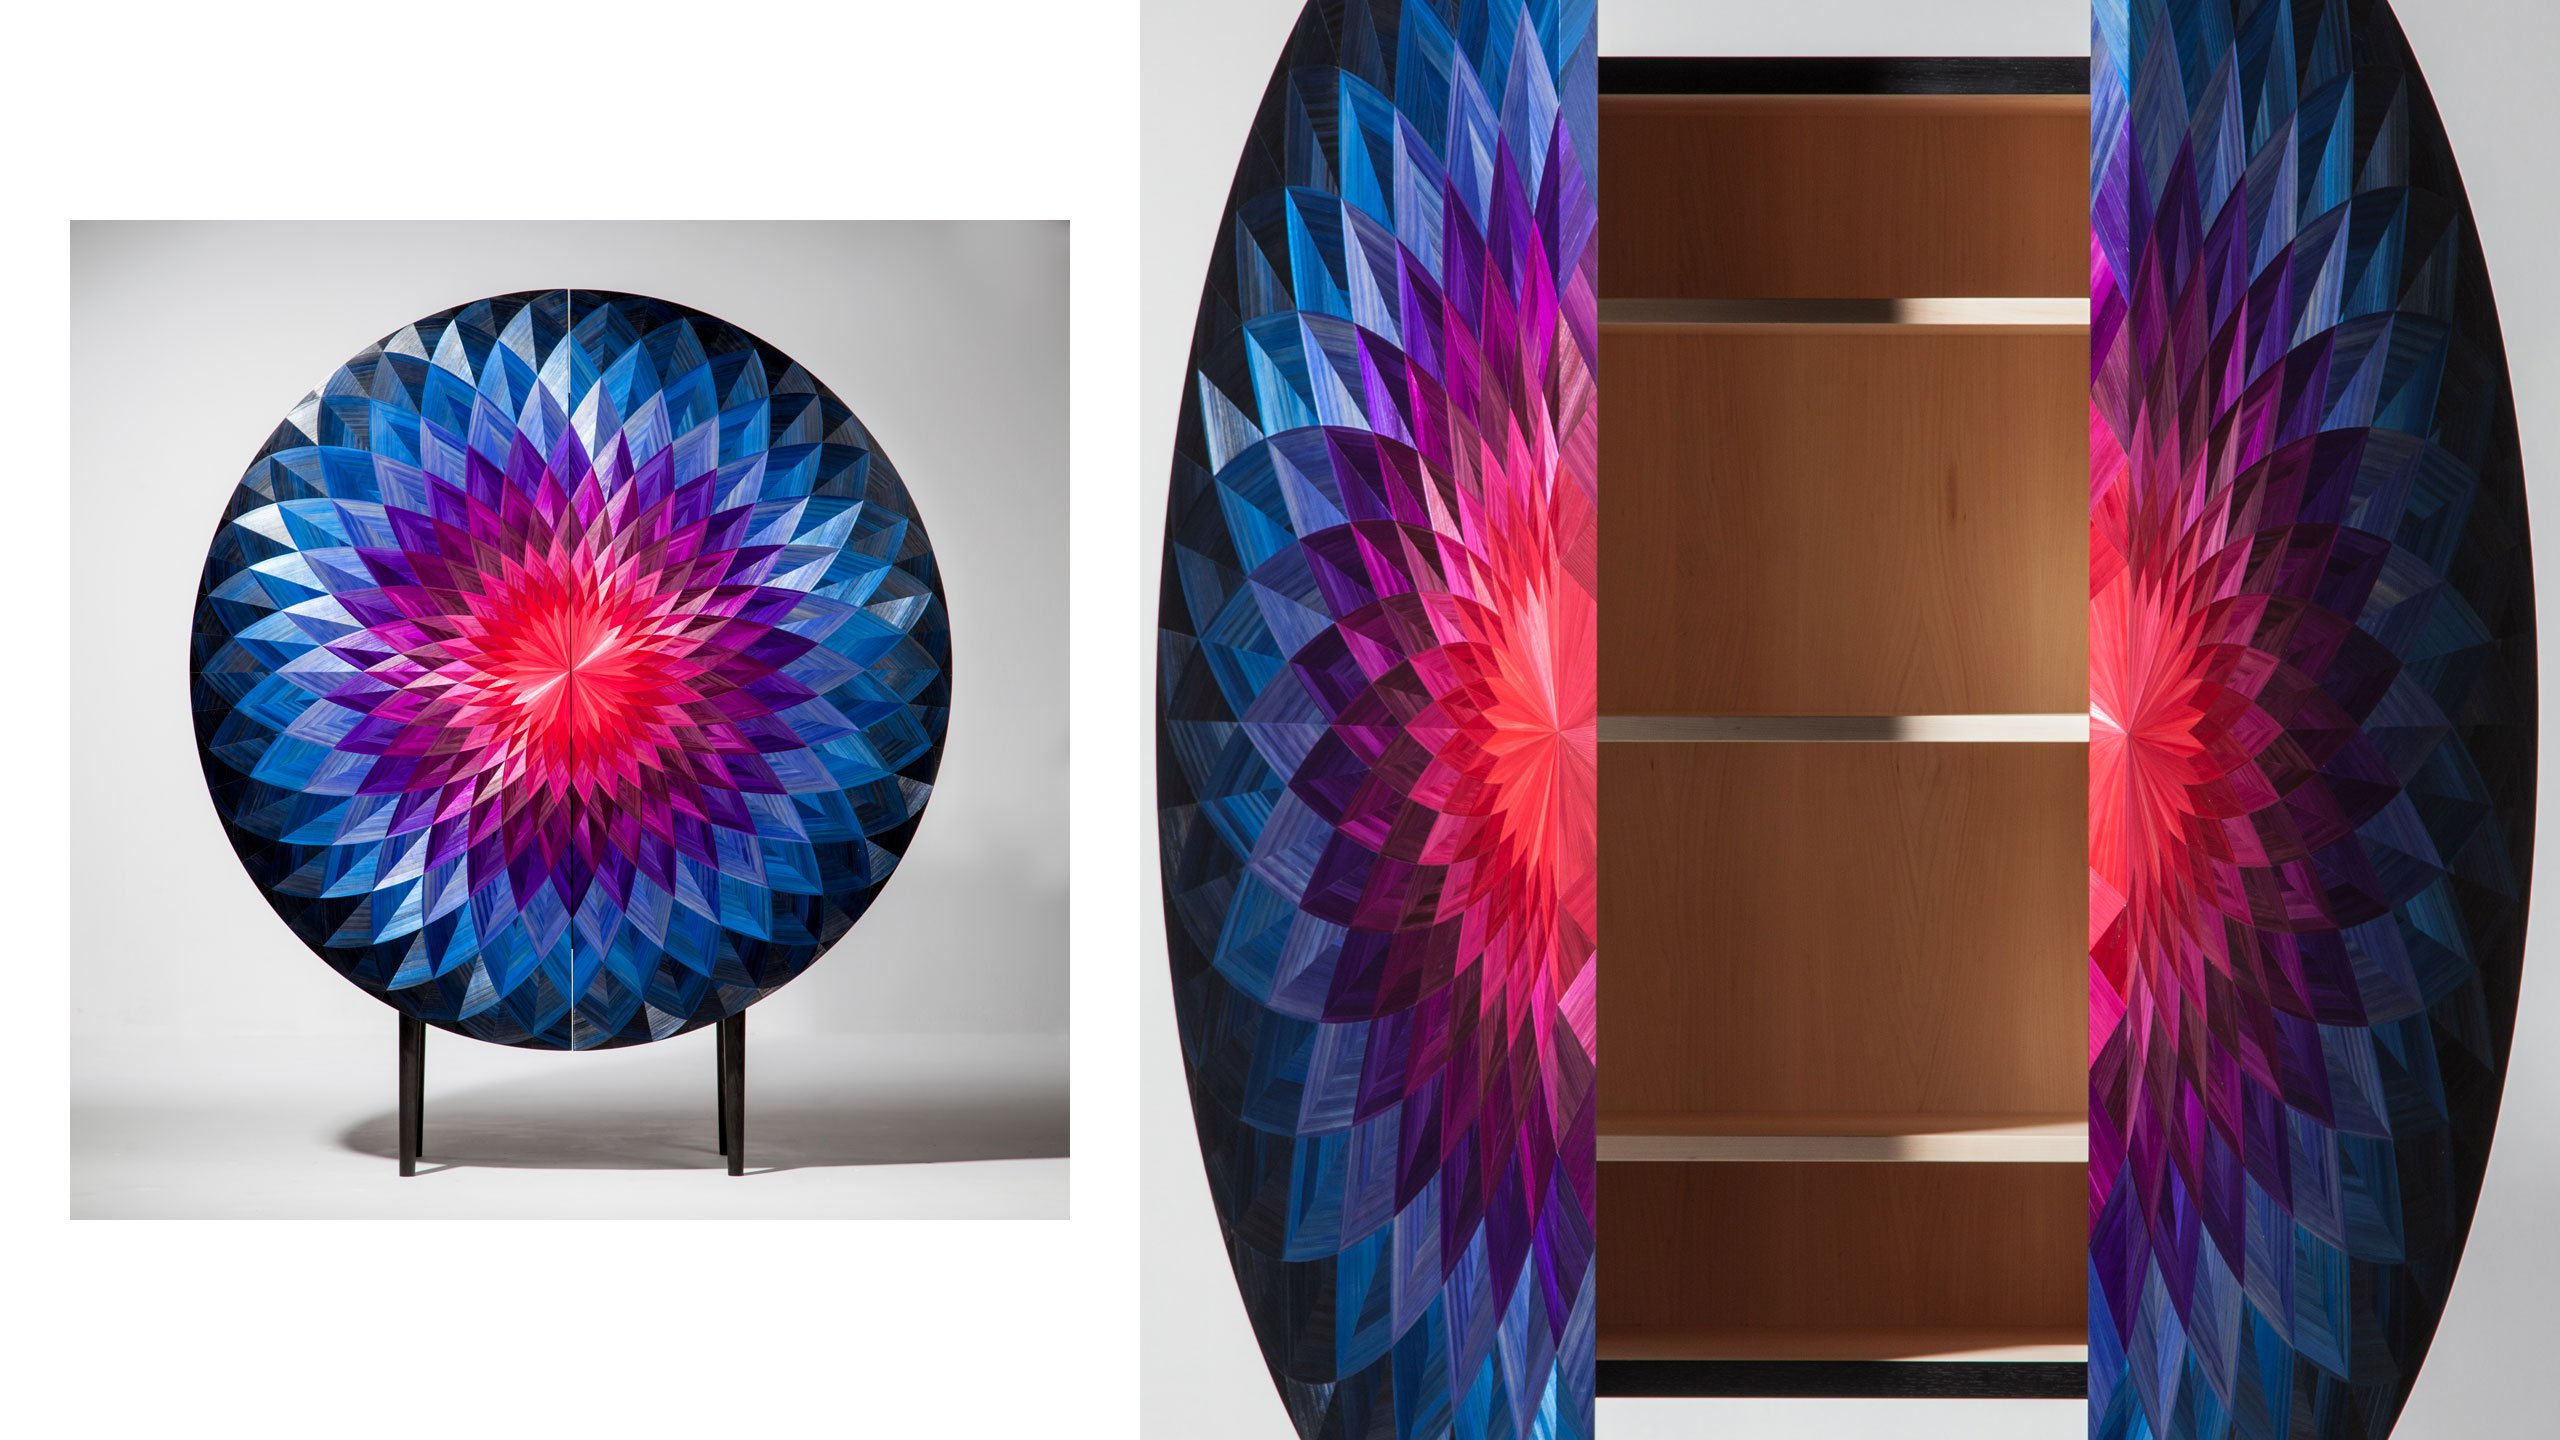 Do You Want to be in the Spotlight at Milan Design 2019 - The Bloom Cabinet by industrial designer Adam Goodrum and marquetry artisan Arthur Seigneur milan design week Do You Want to be in the Spotlight at Milan Design Week 2019? Do You Want to be in the Spotlight at Milan Design 2019 The Bloom Cabinet by industrial designer Adam Goodrum and marquetry artisan Arthur Seigneur